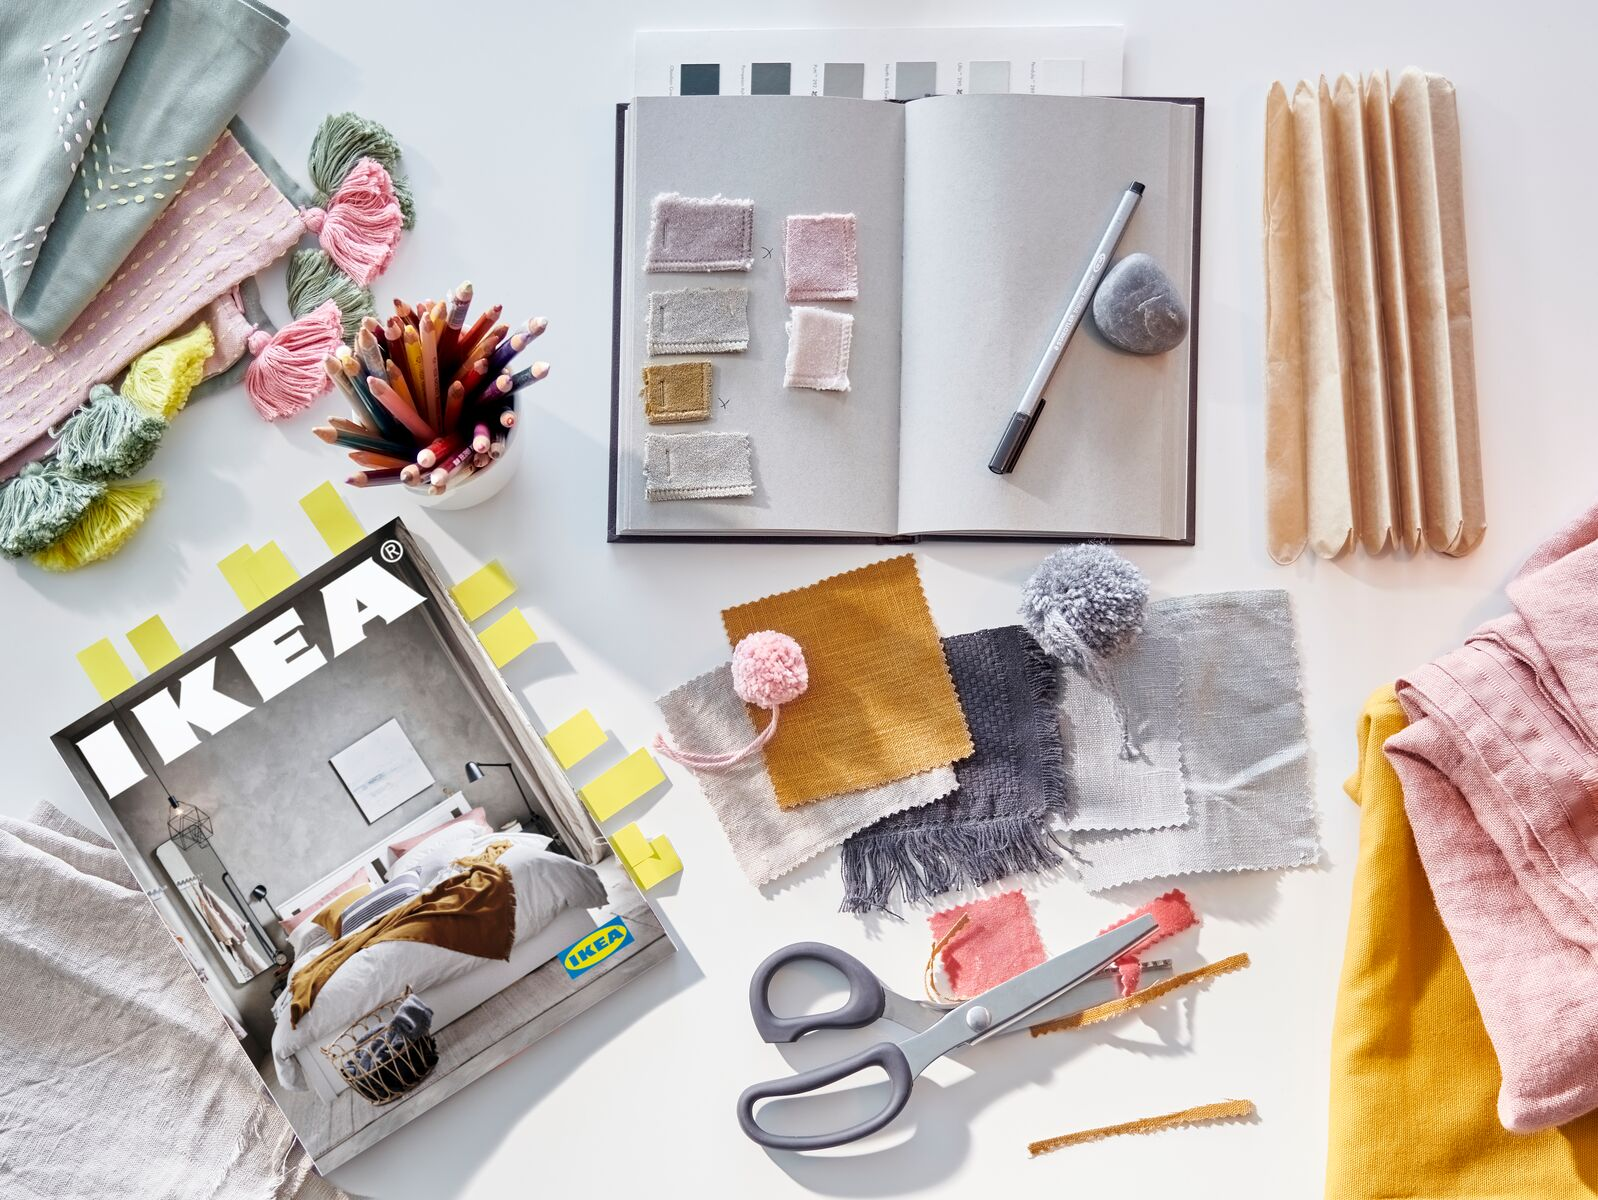 IKEA Catalog 2021 with notebook and fabric